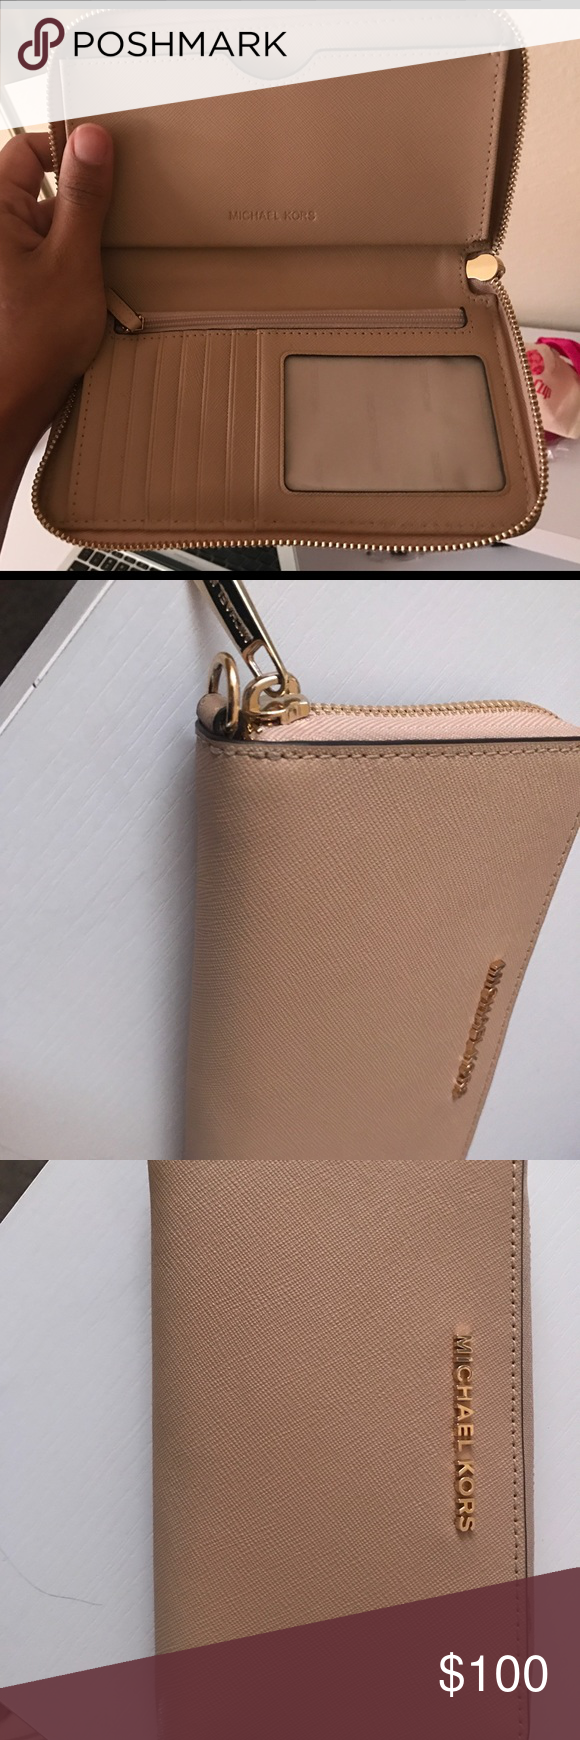 7eb7773dfbff Michael Kors wallet in the color Oyster In the color Oyster! Beautiful and  well taken care of Michael Kors Wallet. Fits iPhone 6 Plus and 7 plus.